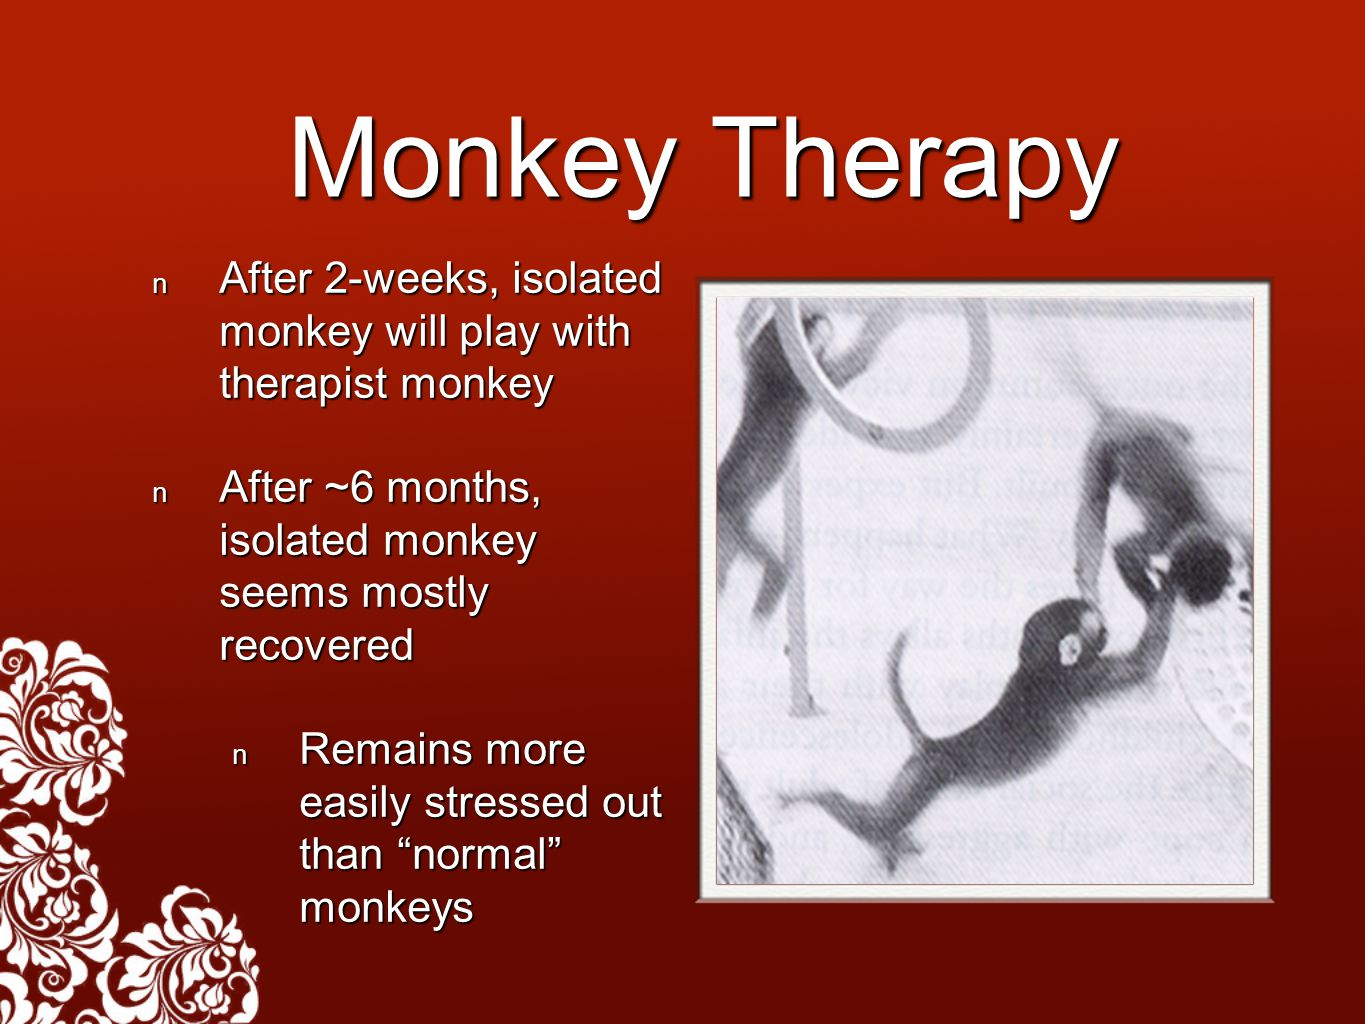 Monkey Therapy After 2-weeks, isolated monkey will play with therapist monkey After 2-weeks, isolated monkey will play with therapist monkey After ~6 months, isolated monkey seems mostly recovered After ~6 months, isolated monkey seems mostly recovered Remains more easily stressed out than normal monkeys Remains more easily stressed out than normal monkeys